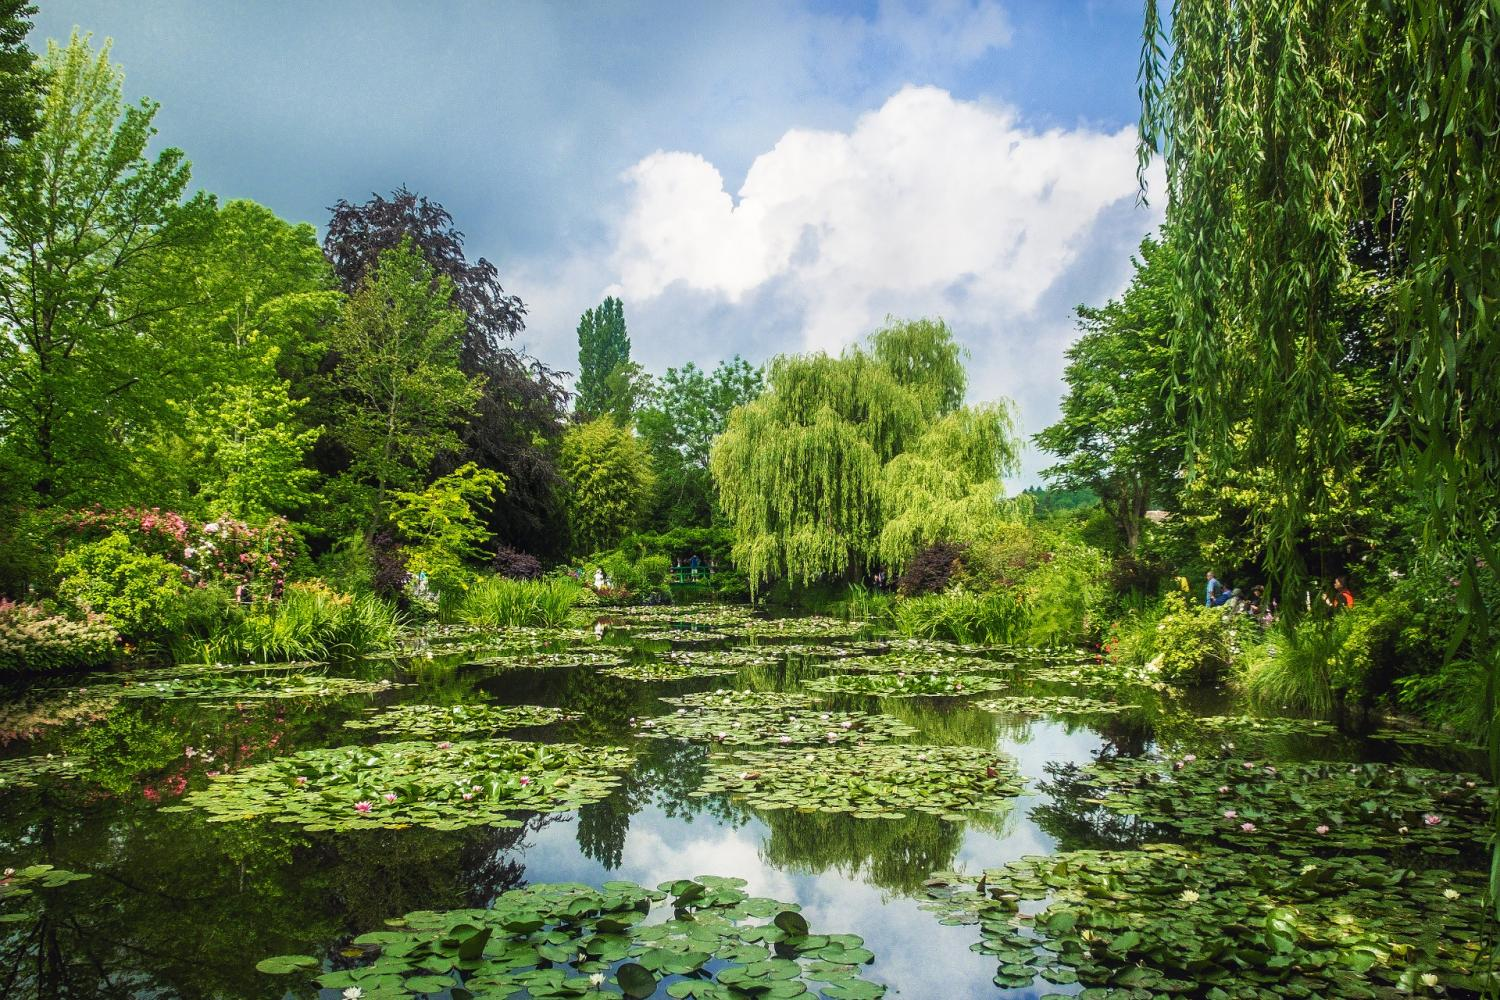 Venture through the mystical gardens that inspired Monet